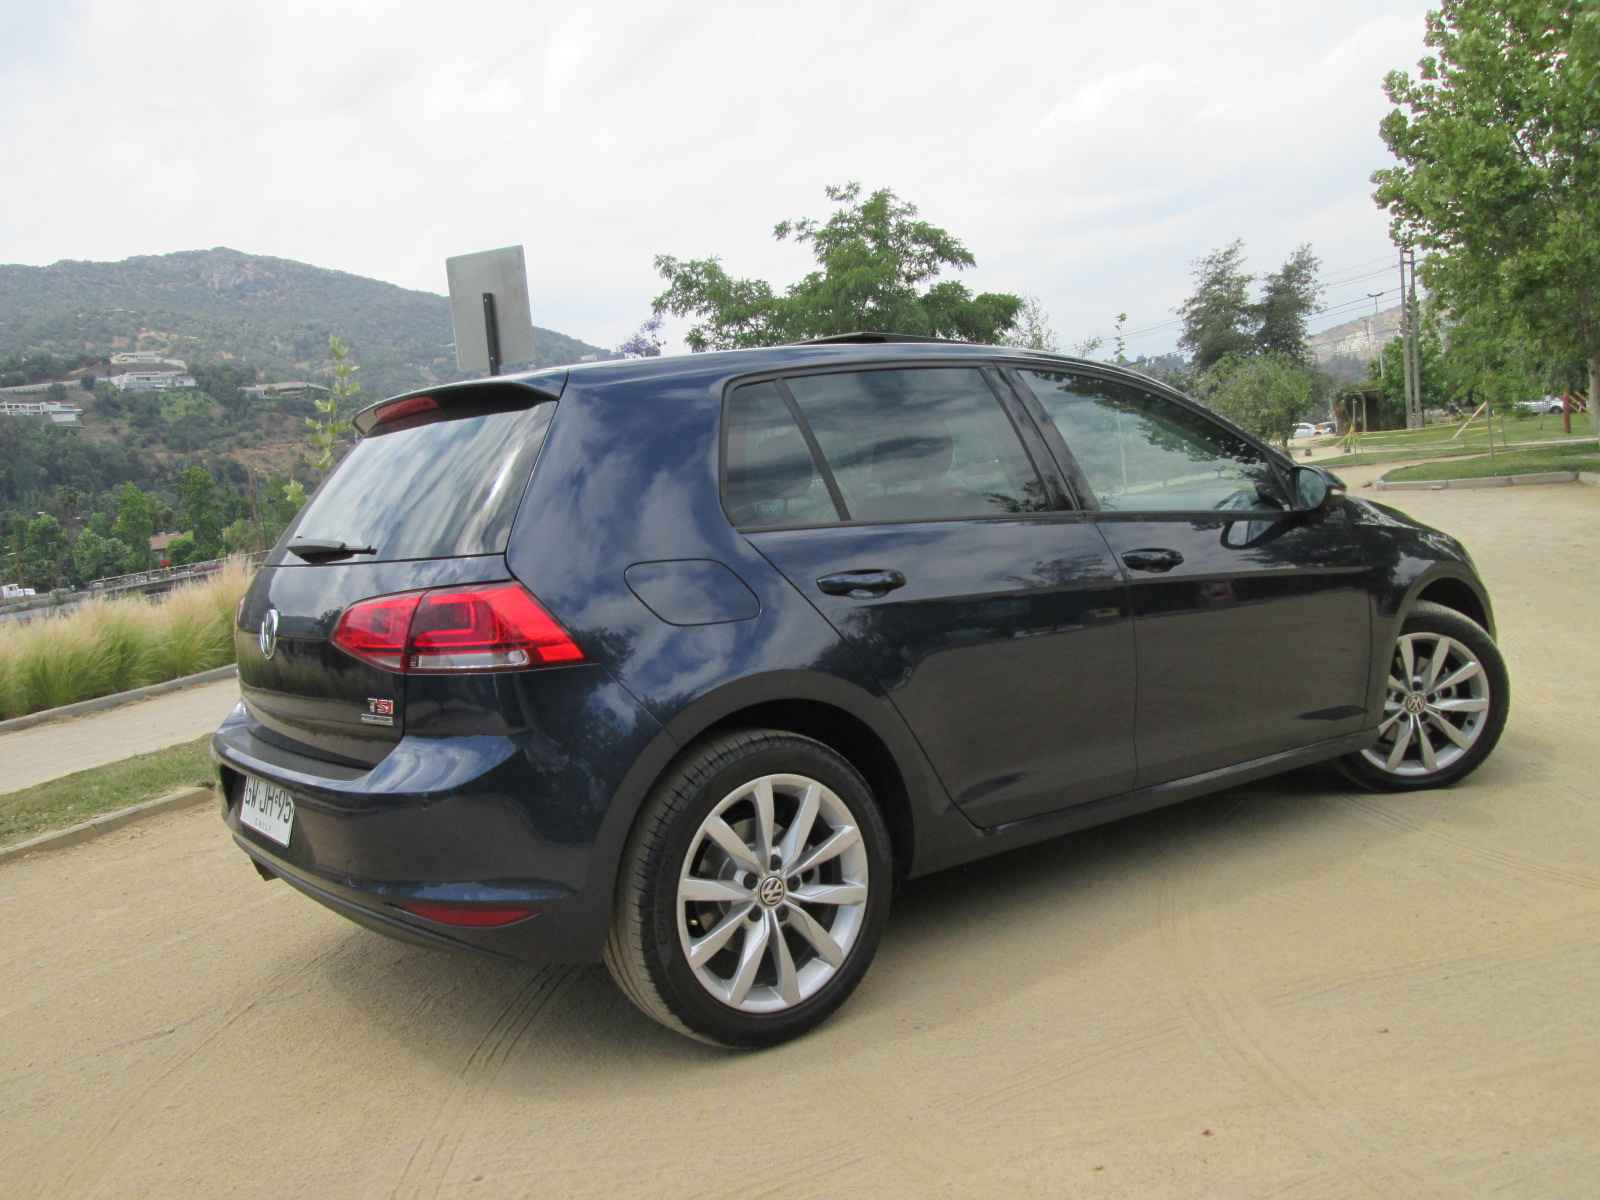 vw golf vii 1 4 tsi 140 cv sport dsg7 la espera vali la pena actualizado rutamotor. Black Bedroom Furniture Sets. Home Design Ideas